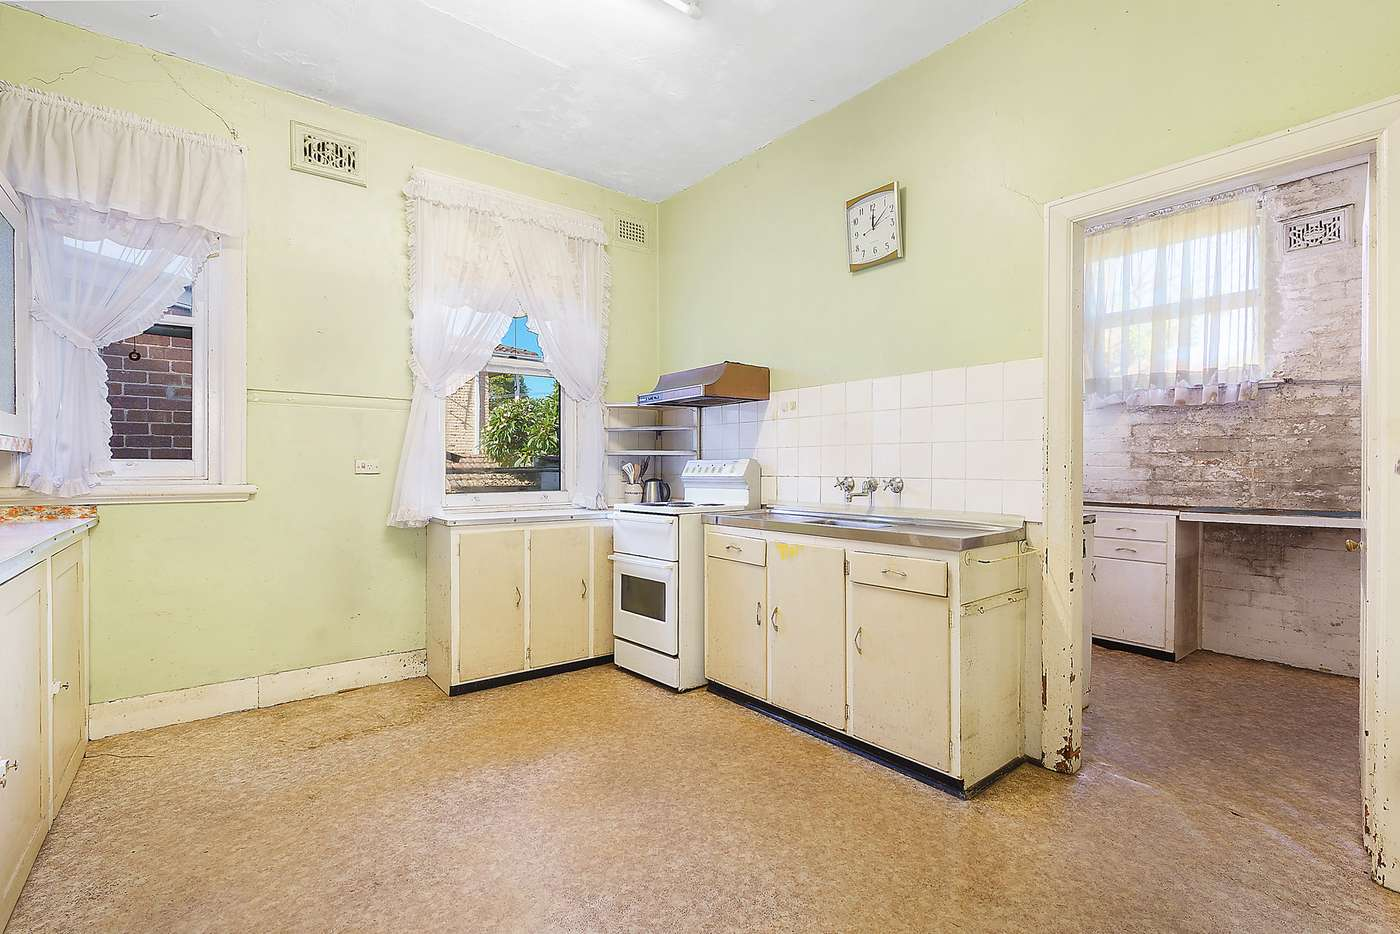 Sixth view of Homely house listing, 47 Kingsland Road, Strathfield NSW 2135